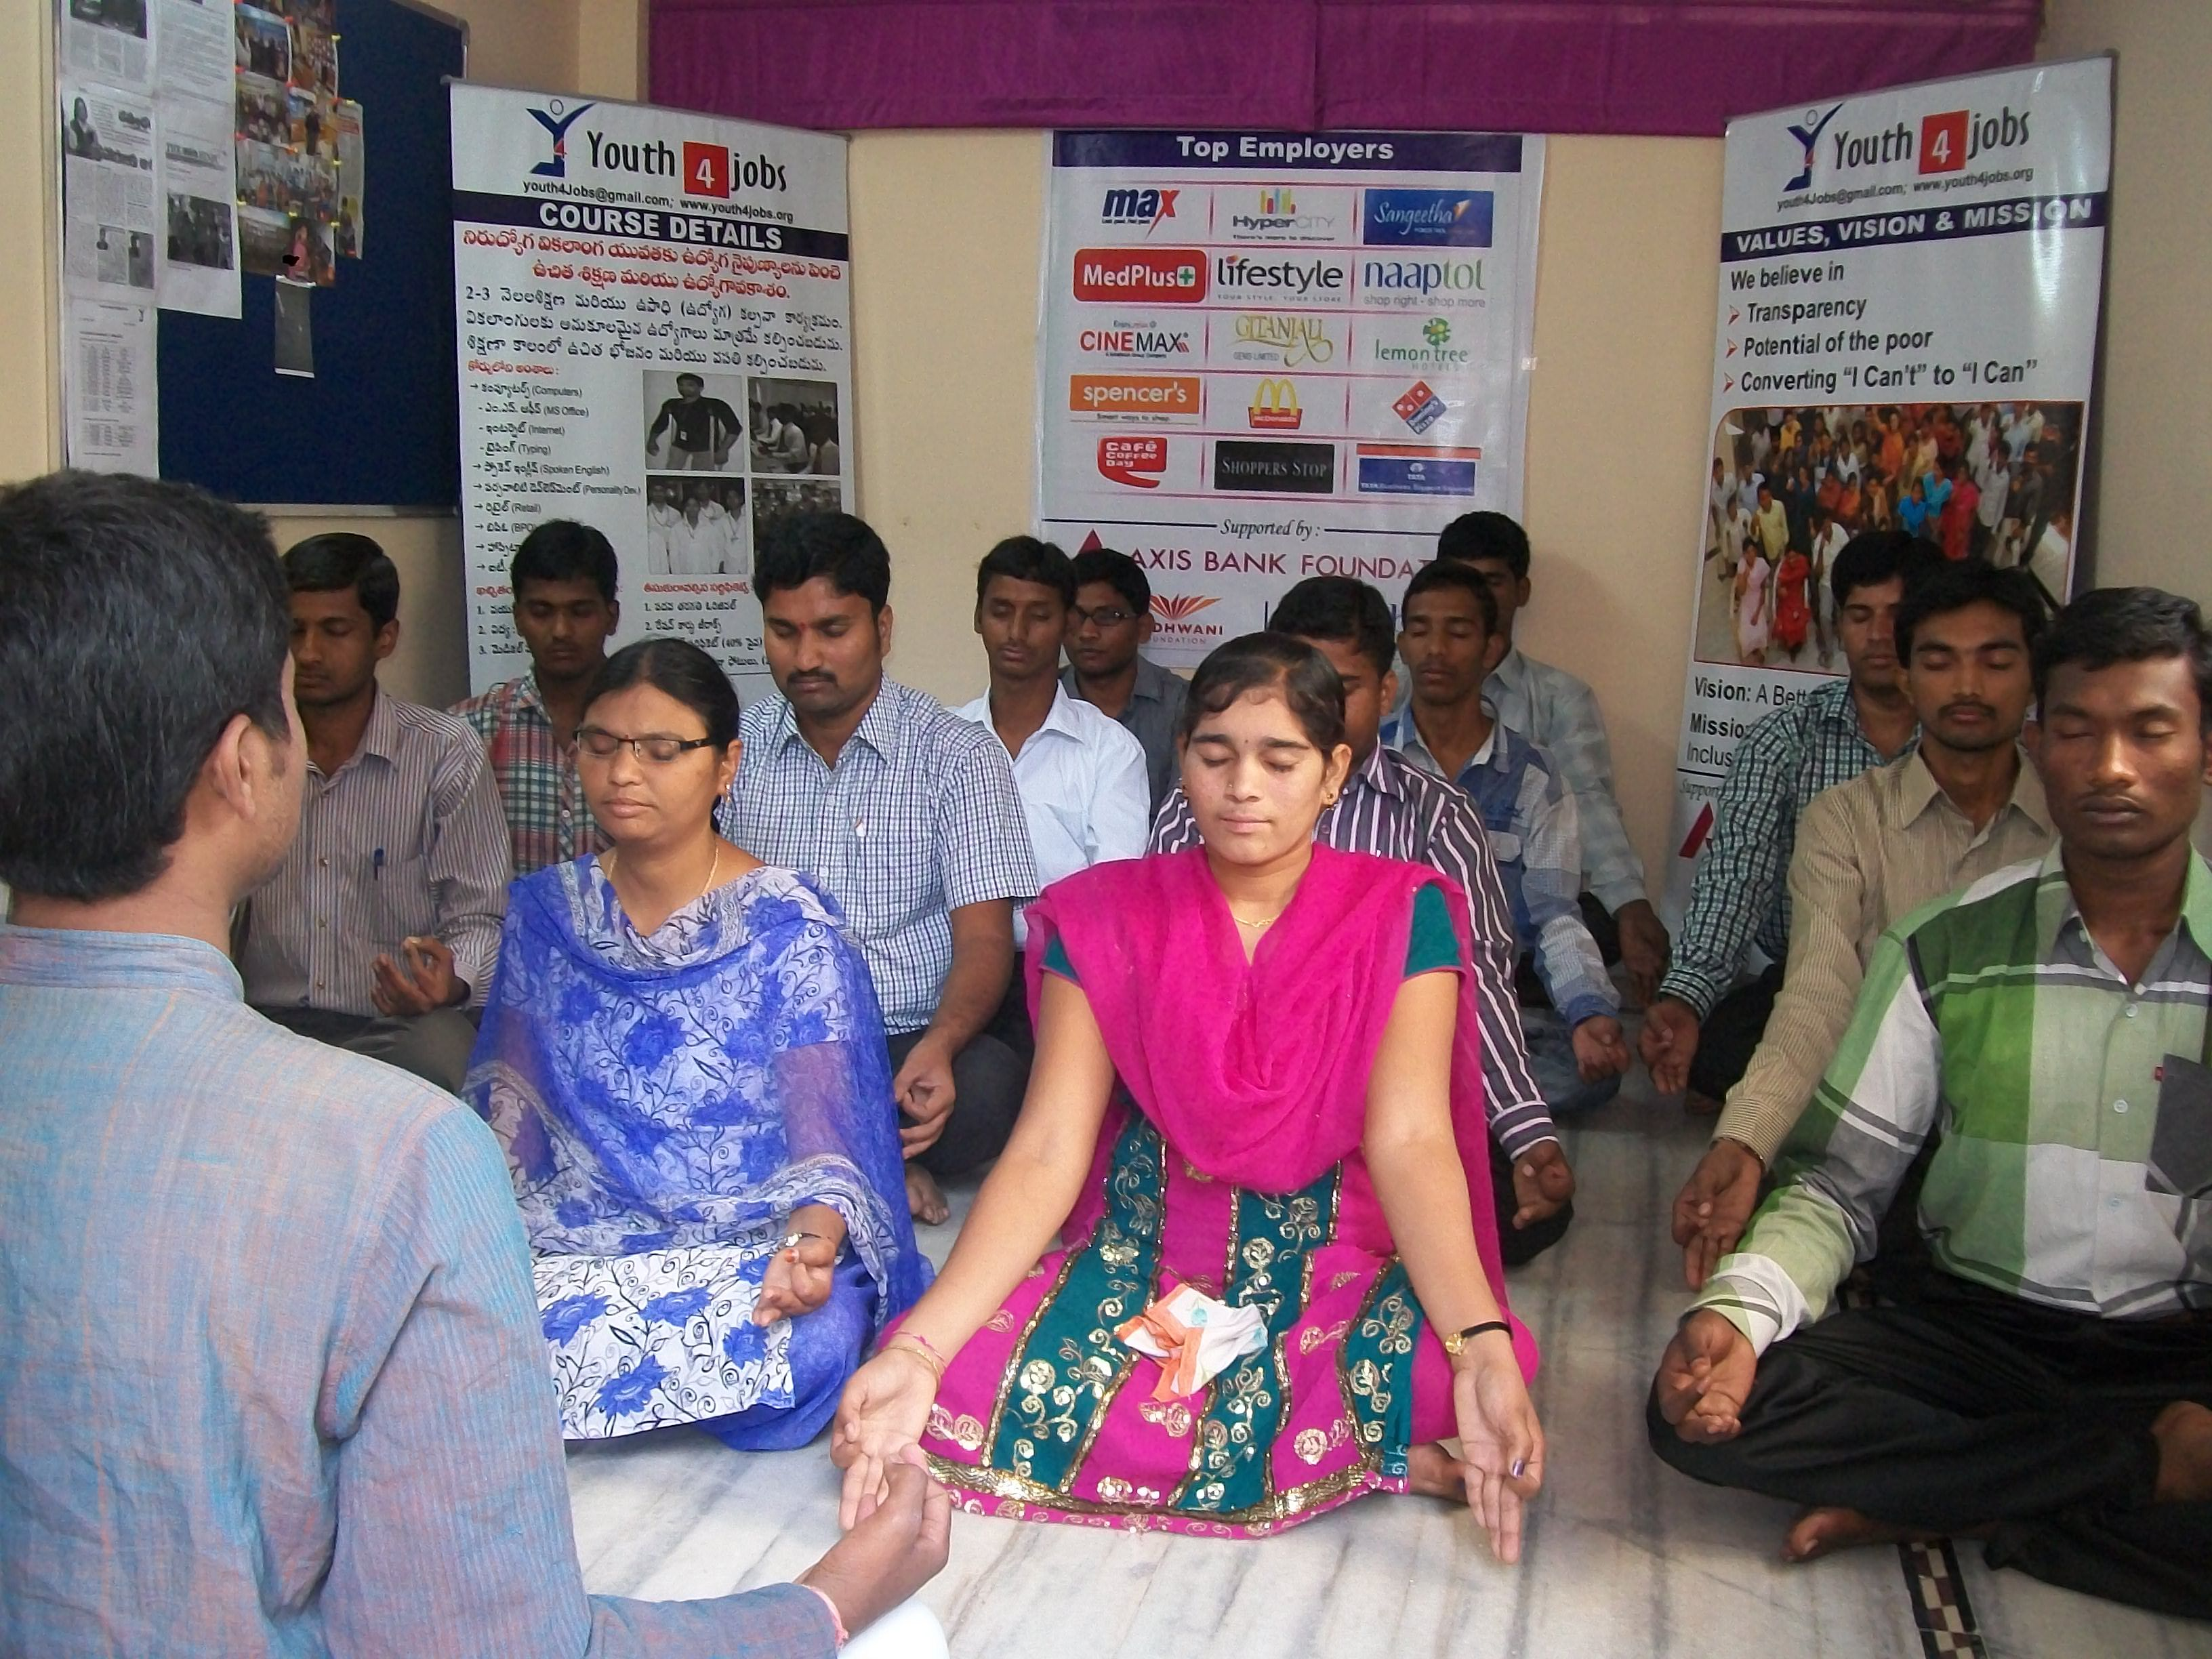 Trainees doing Yoga at our training center - which is an integral part of our course curriculum.